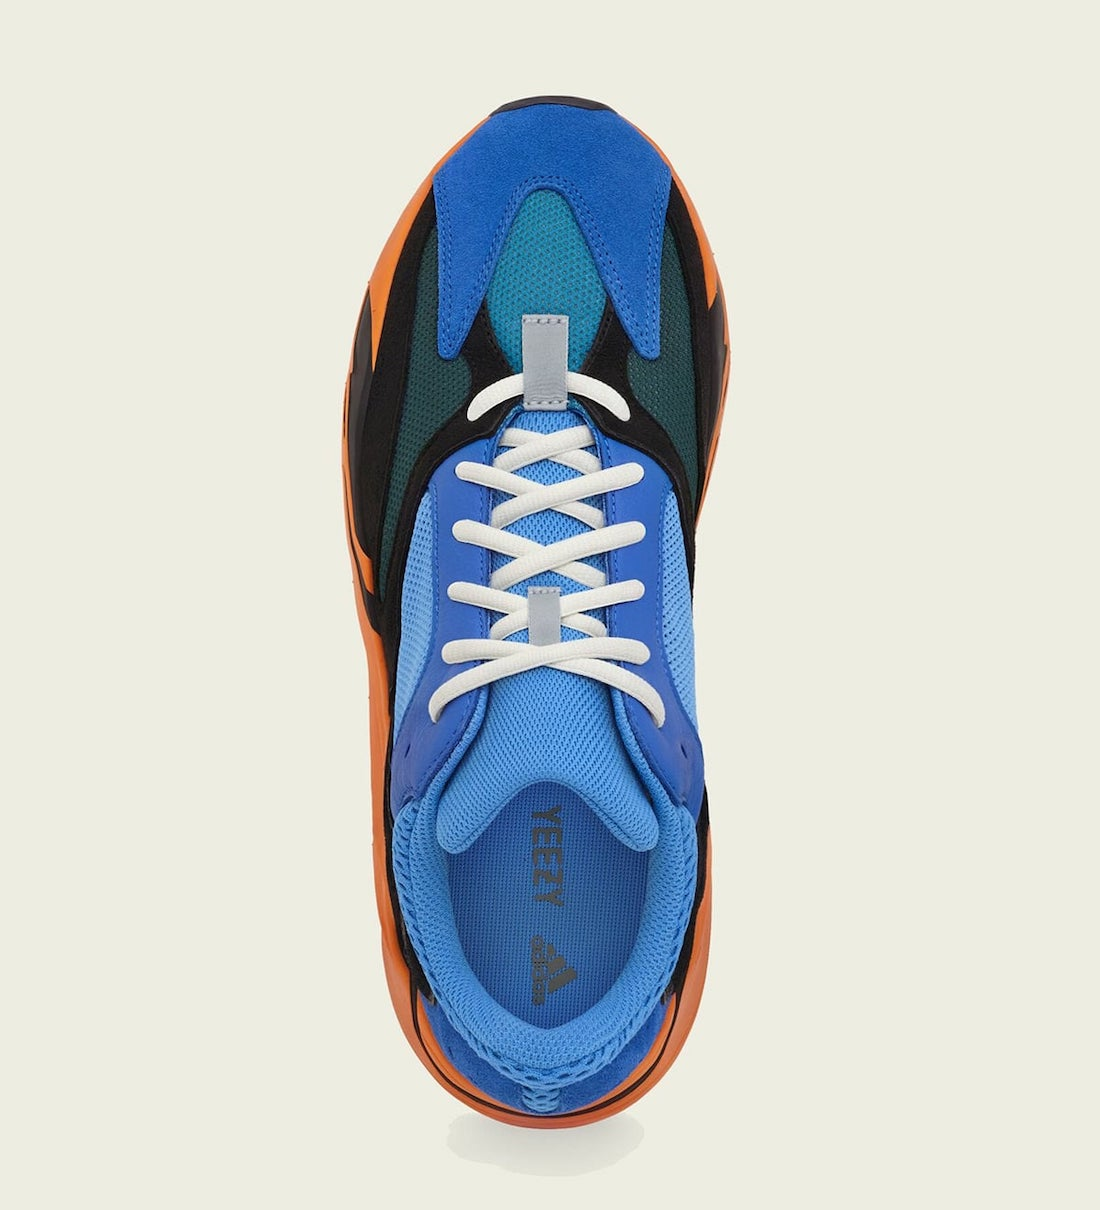 adidas-Yeezy-Boost-700-Bright-Blue-GZ0541-Release-Date-2